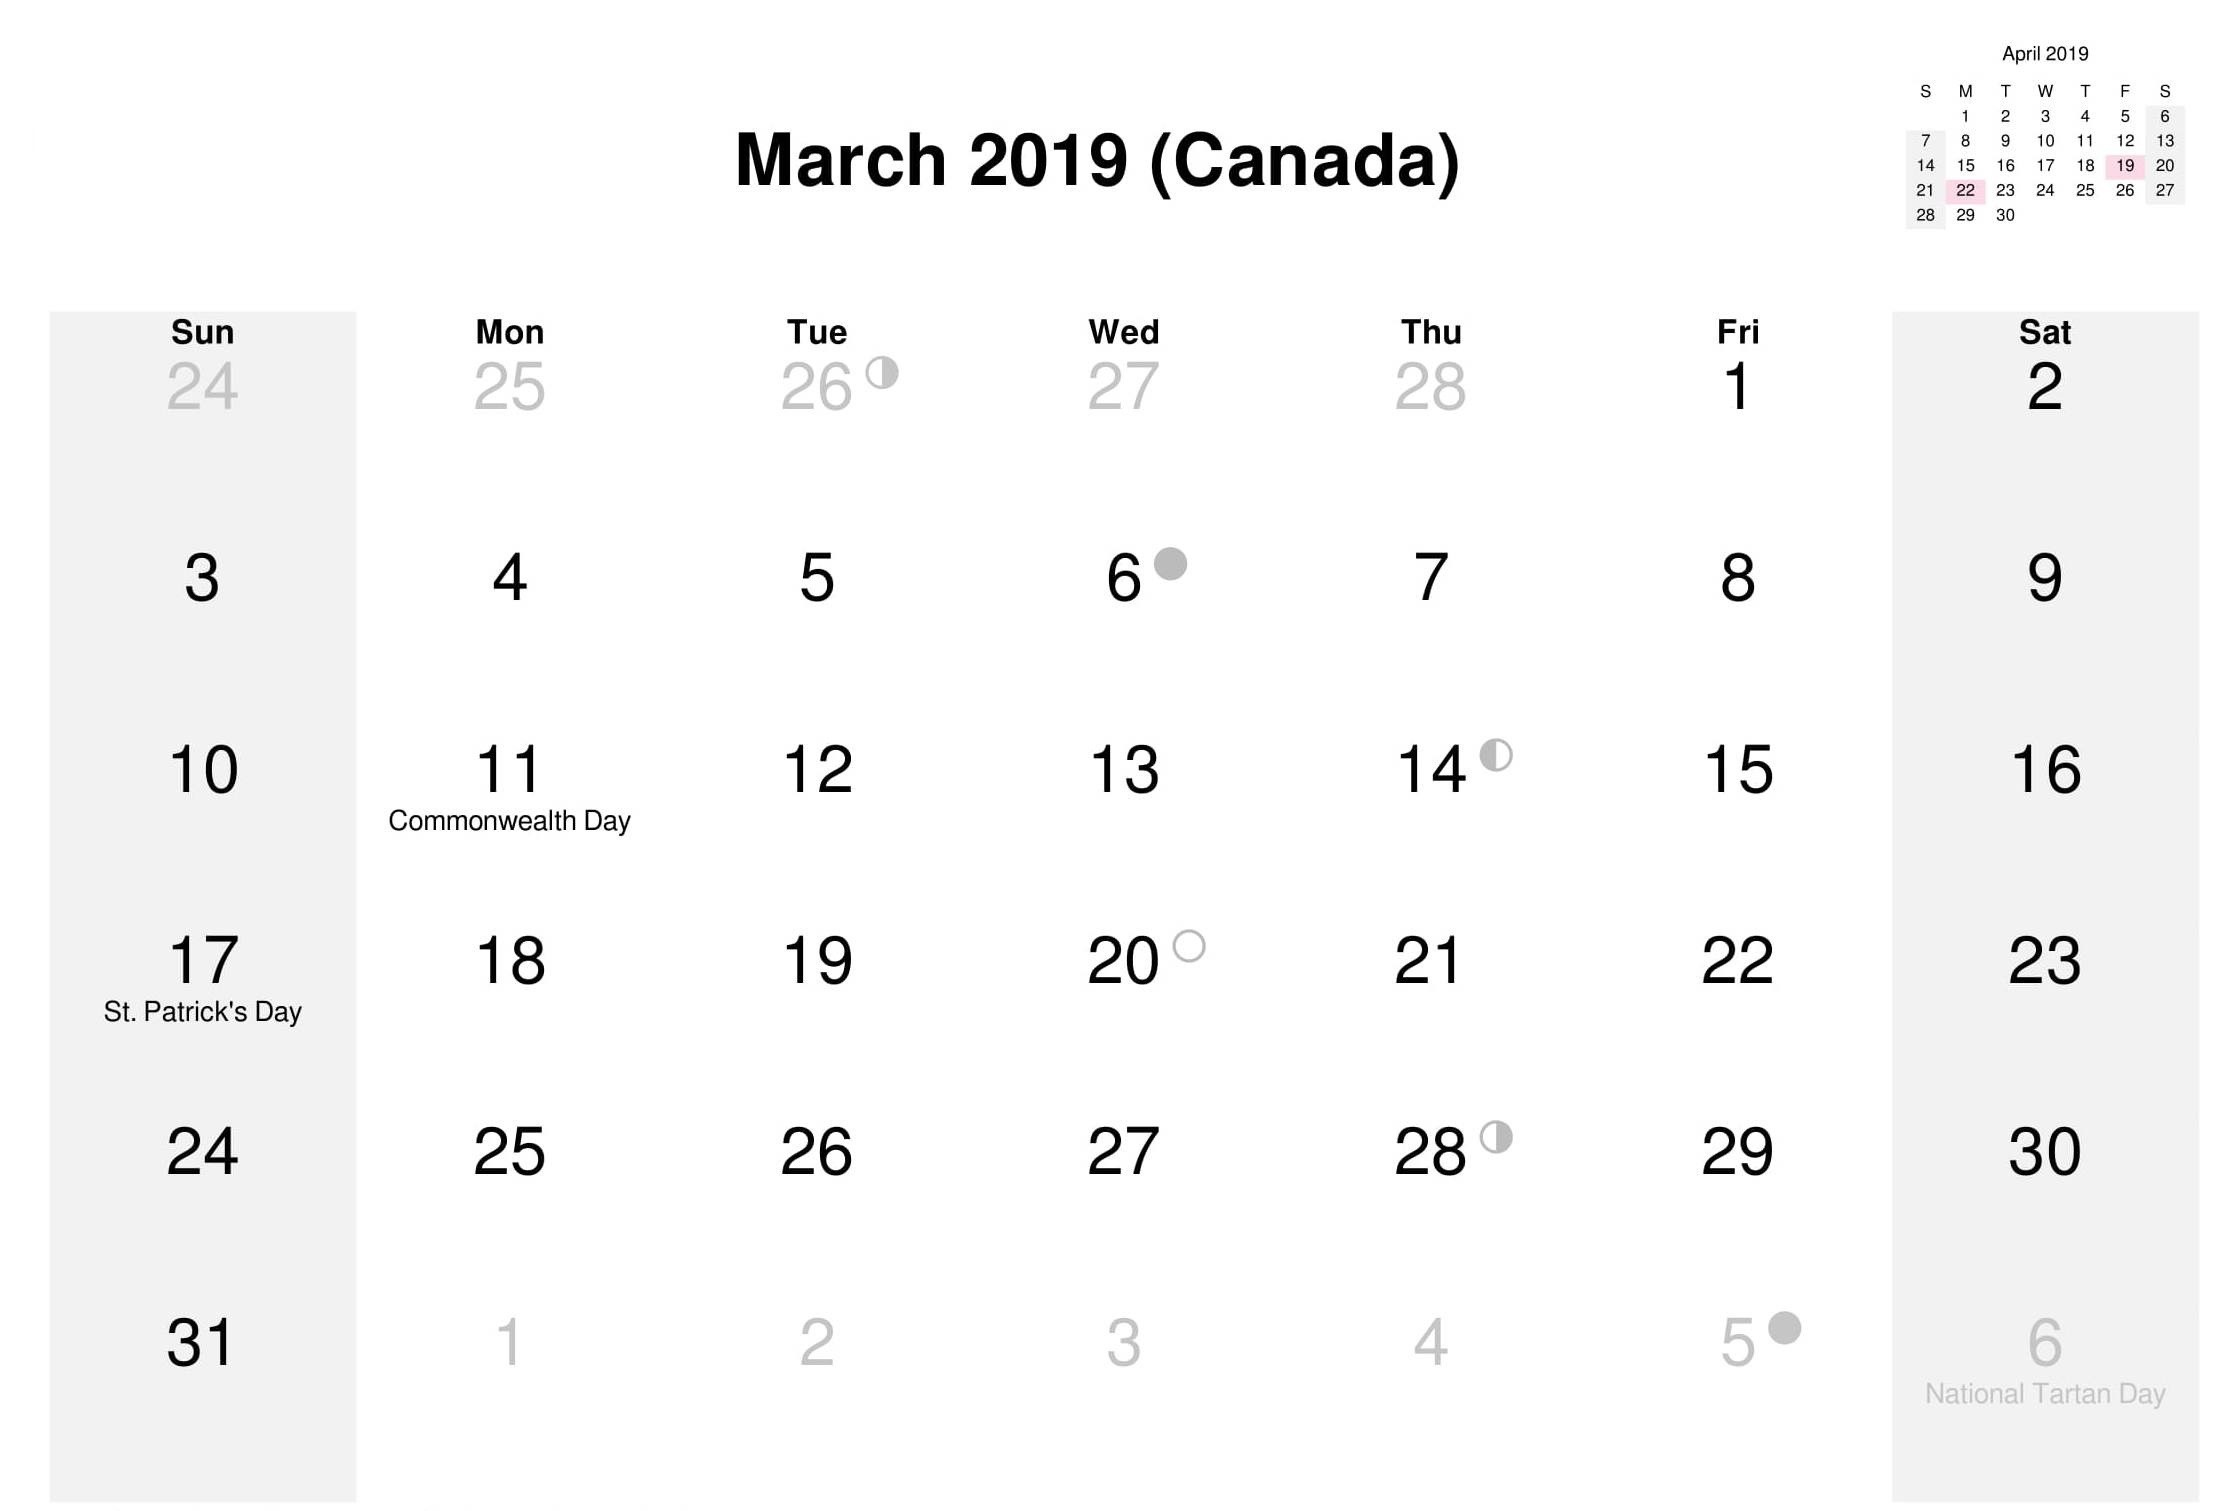 March Holiday Calendar 2019 Más Actual March 2019 Calendar with Holidays Us Uk Canada Australia India Of March Holiday Calendar 2019 Mejores Y Más Novedosos March 2019 Calendar Printable with Holidays